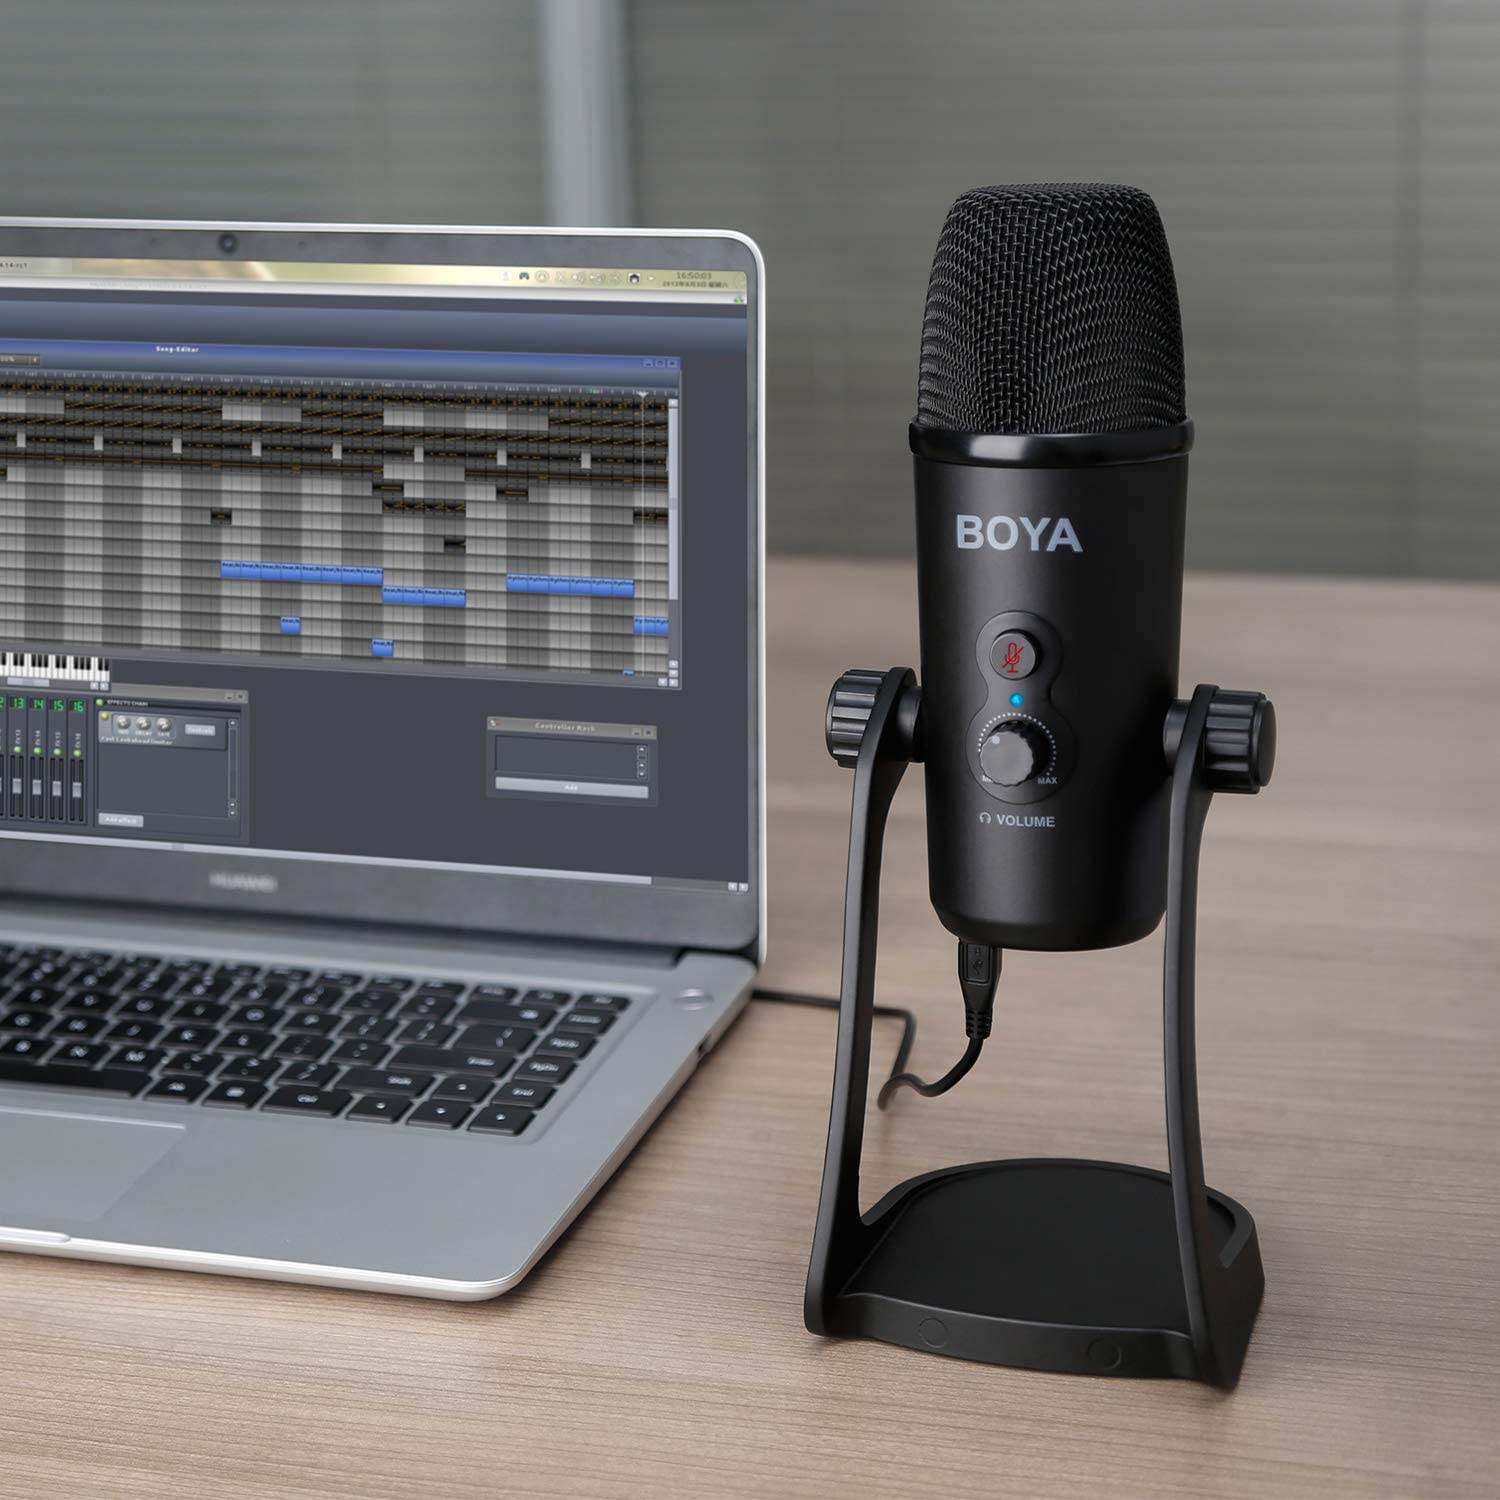 BOYA Table Stand USB Condenser Cardiod Microphone for Windows Mac PC Laptop Recording Broadcasting Live Stream